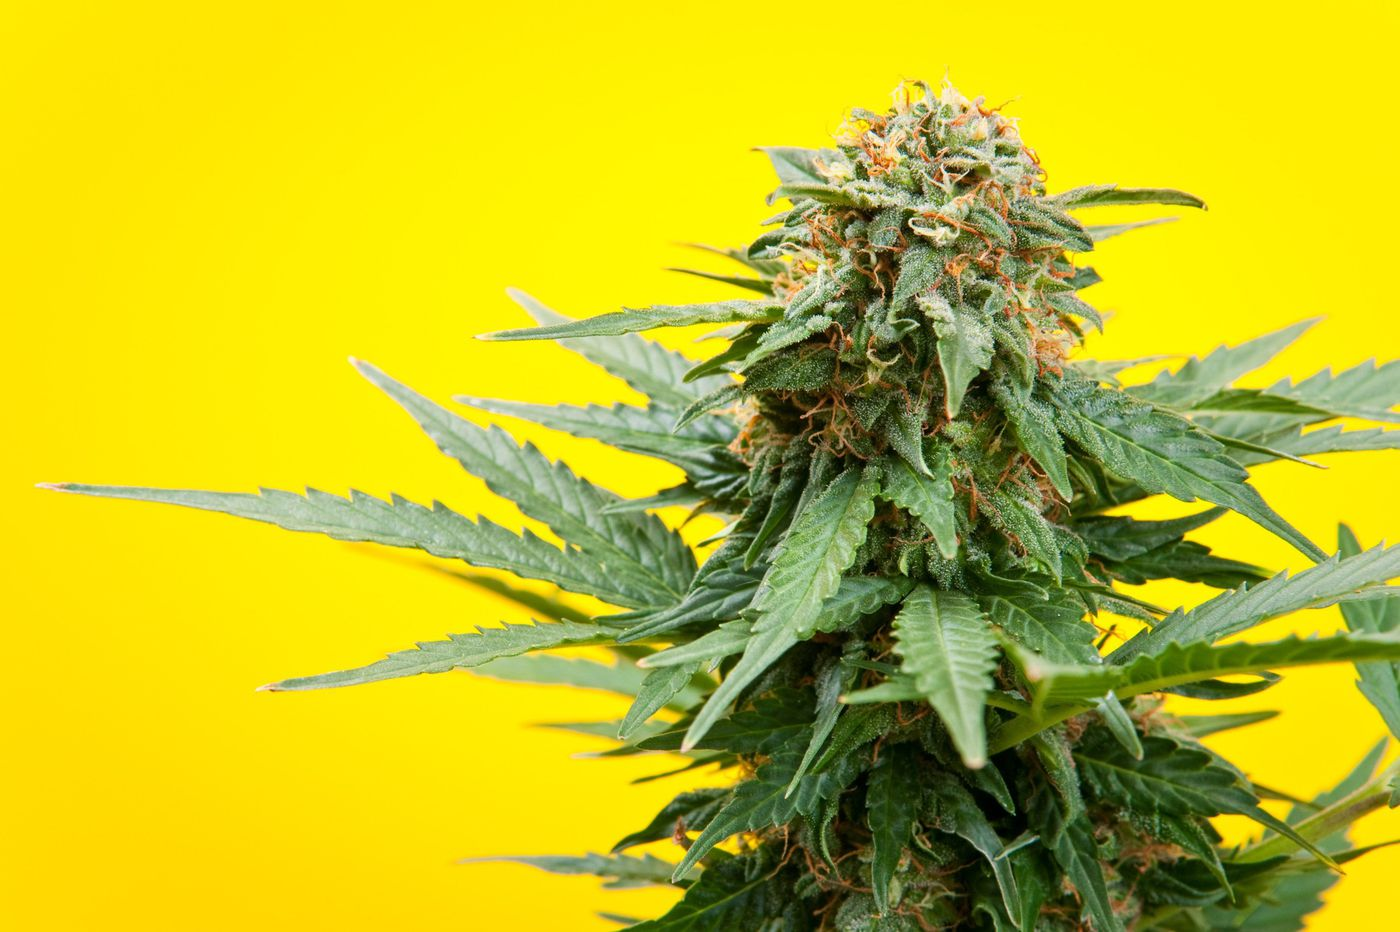 Cannaboid Treatment – A Natural Remedy For All